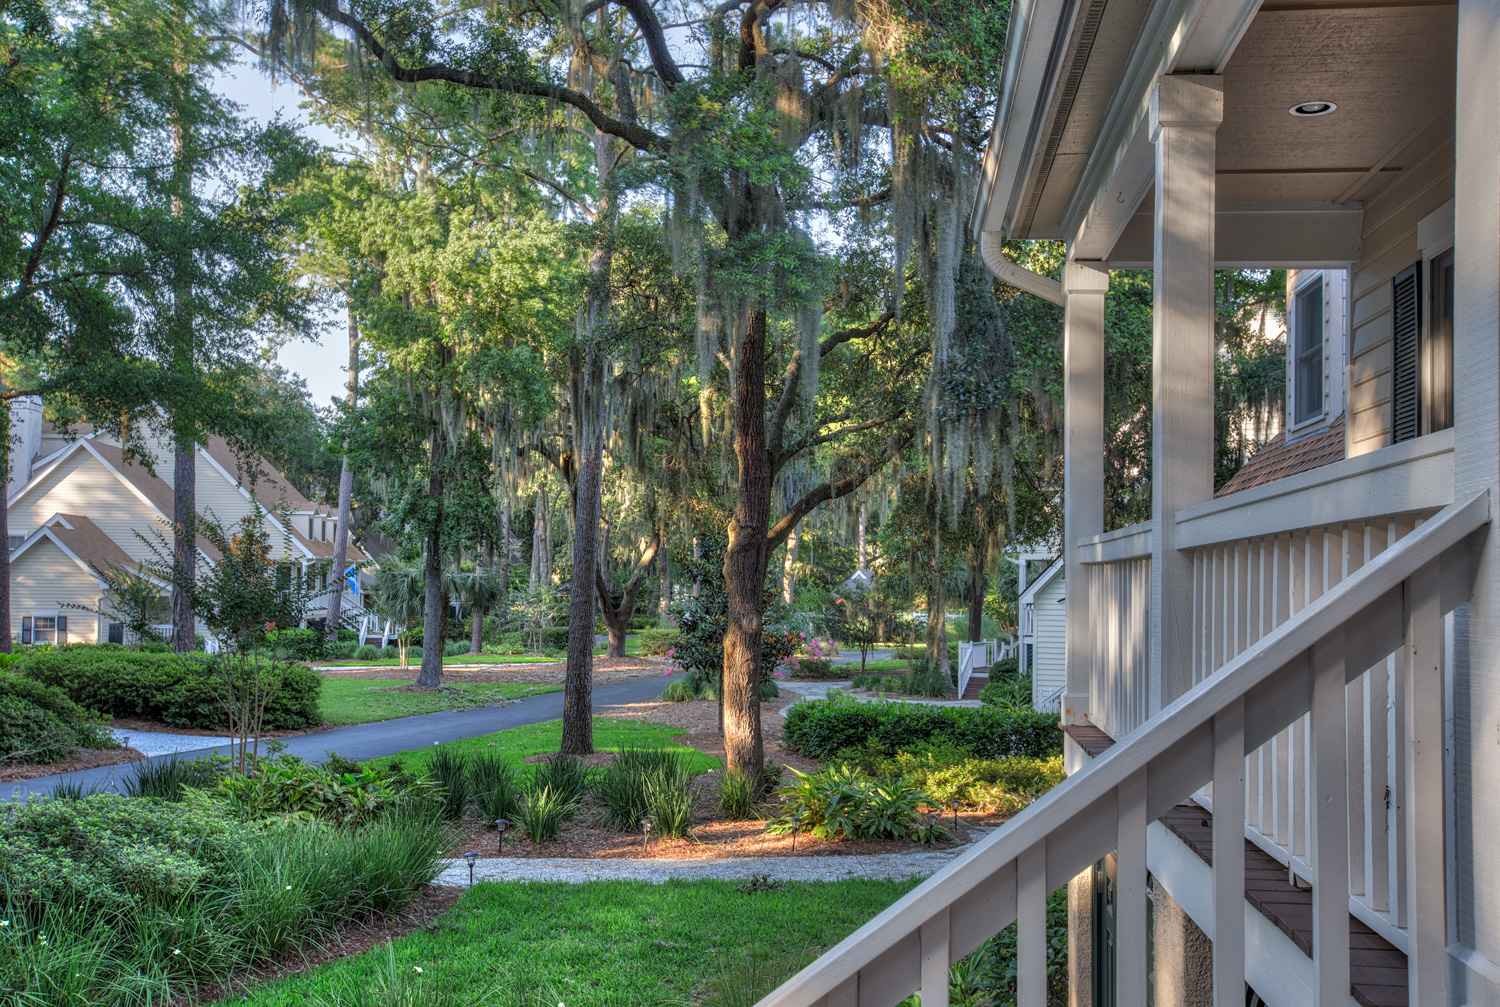 070 front-porch-view.jpg